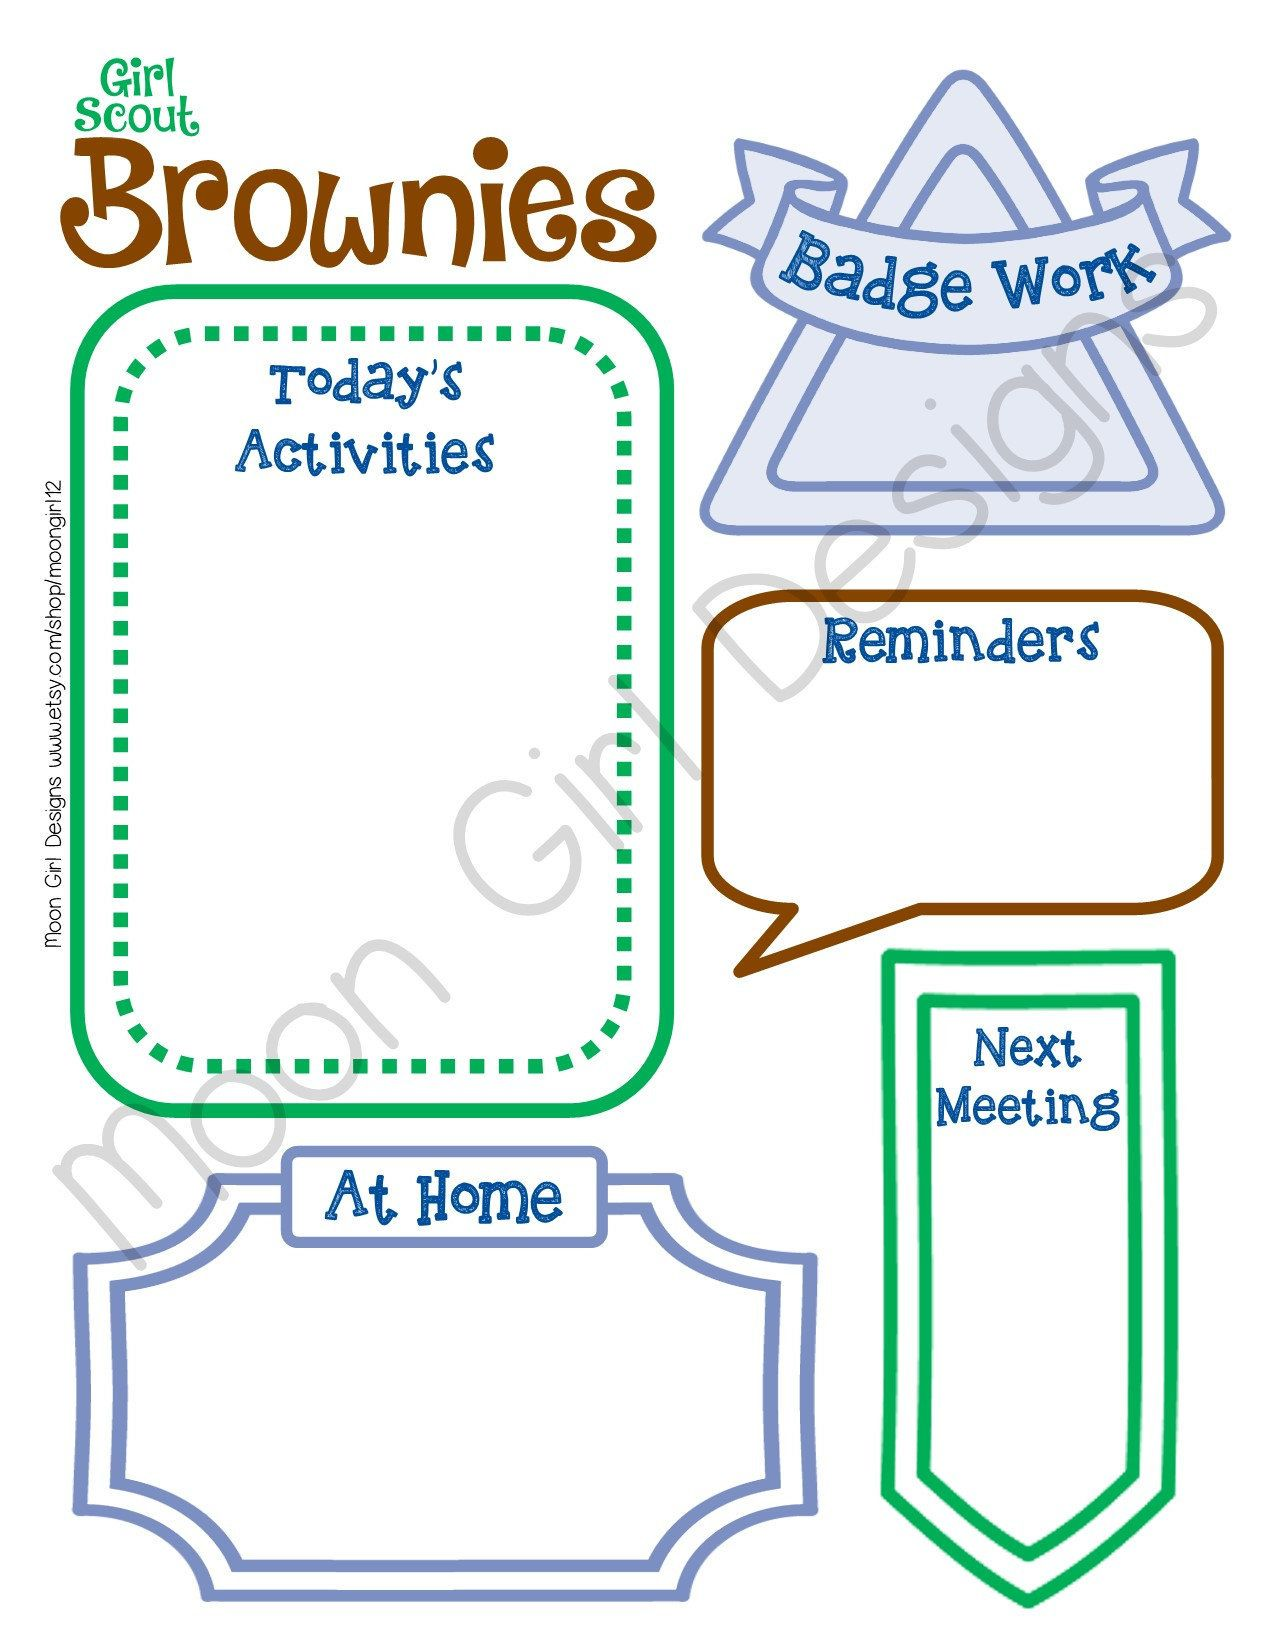 Brownie Girl Scout Meeting Activity Planner Troop Fillable